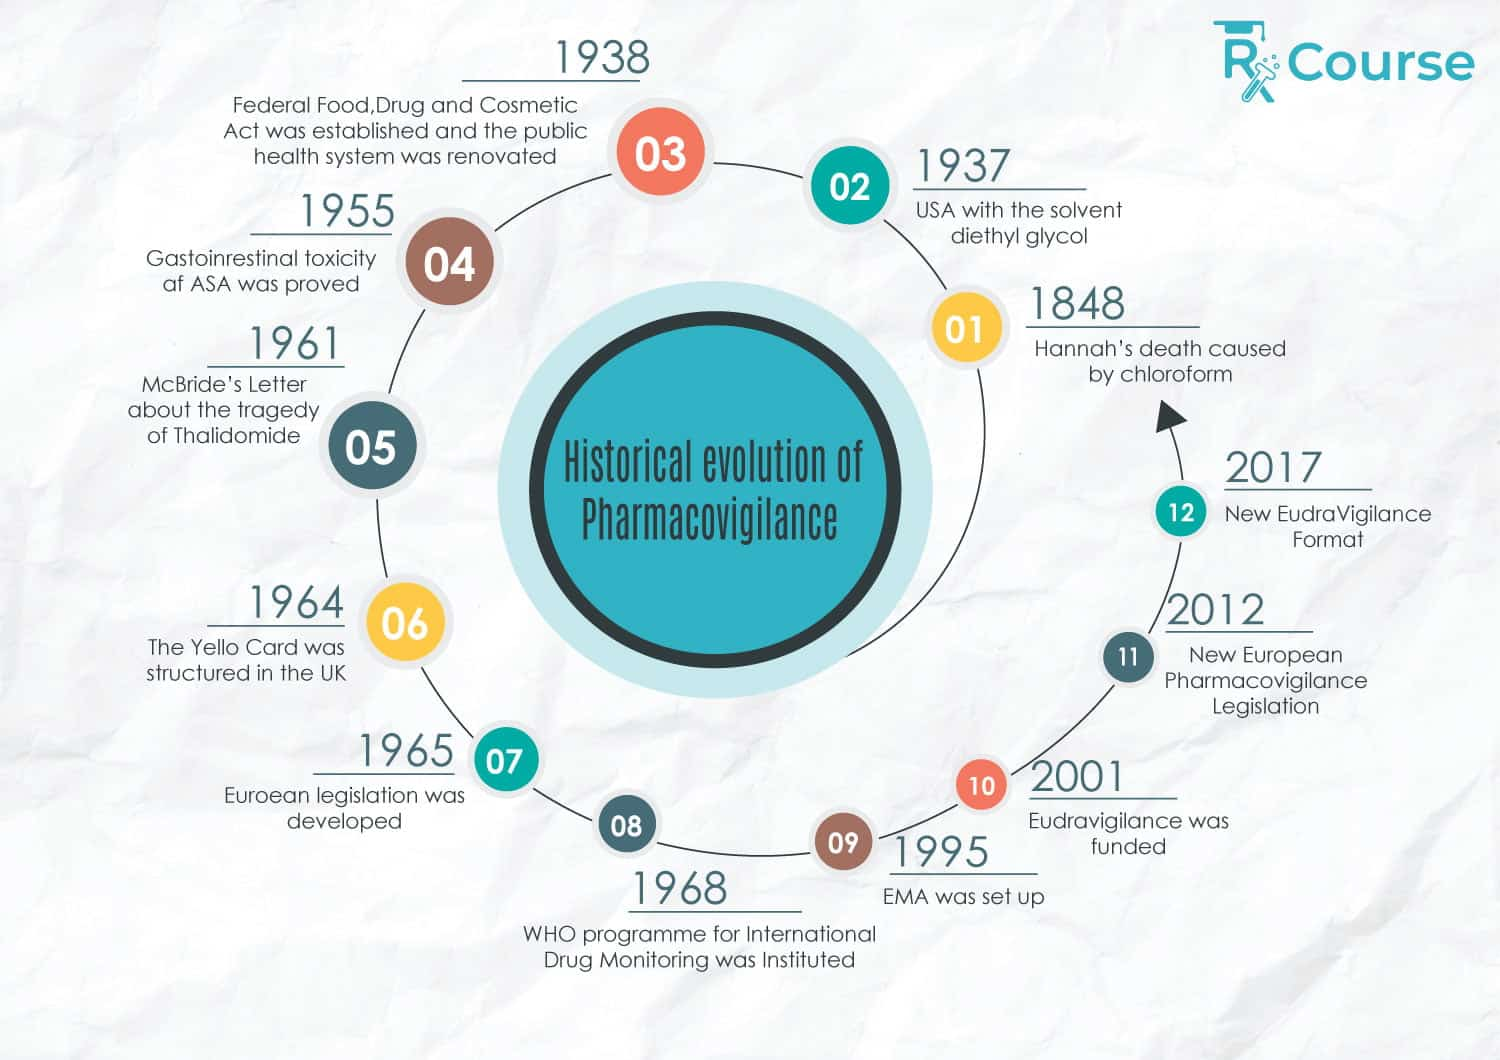 Historical Overview on Drug Safety and Pharmacovigilance